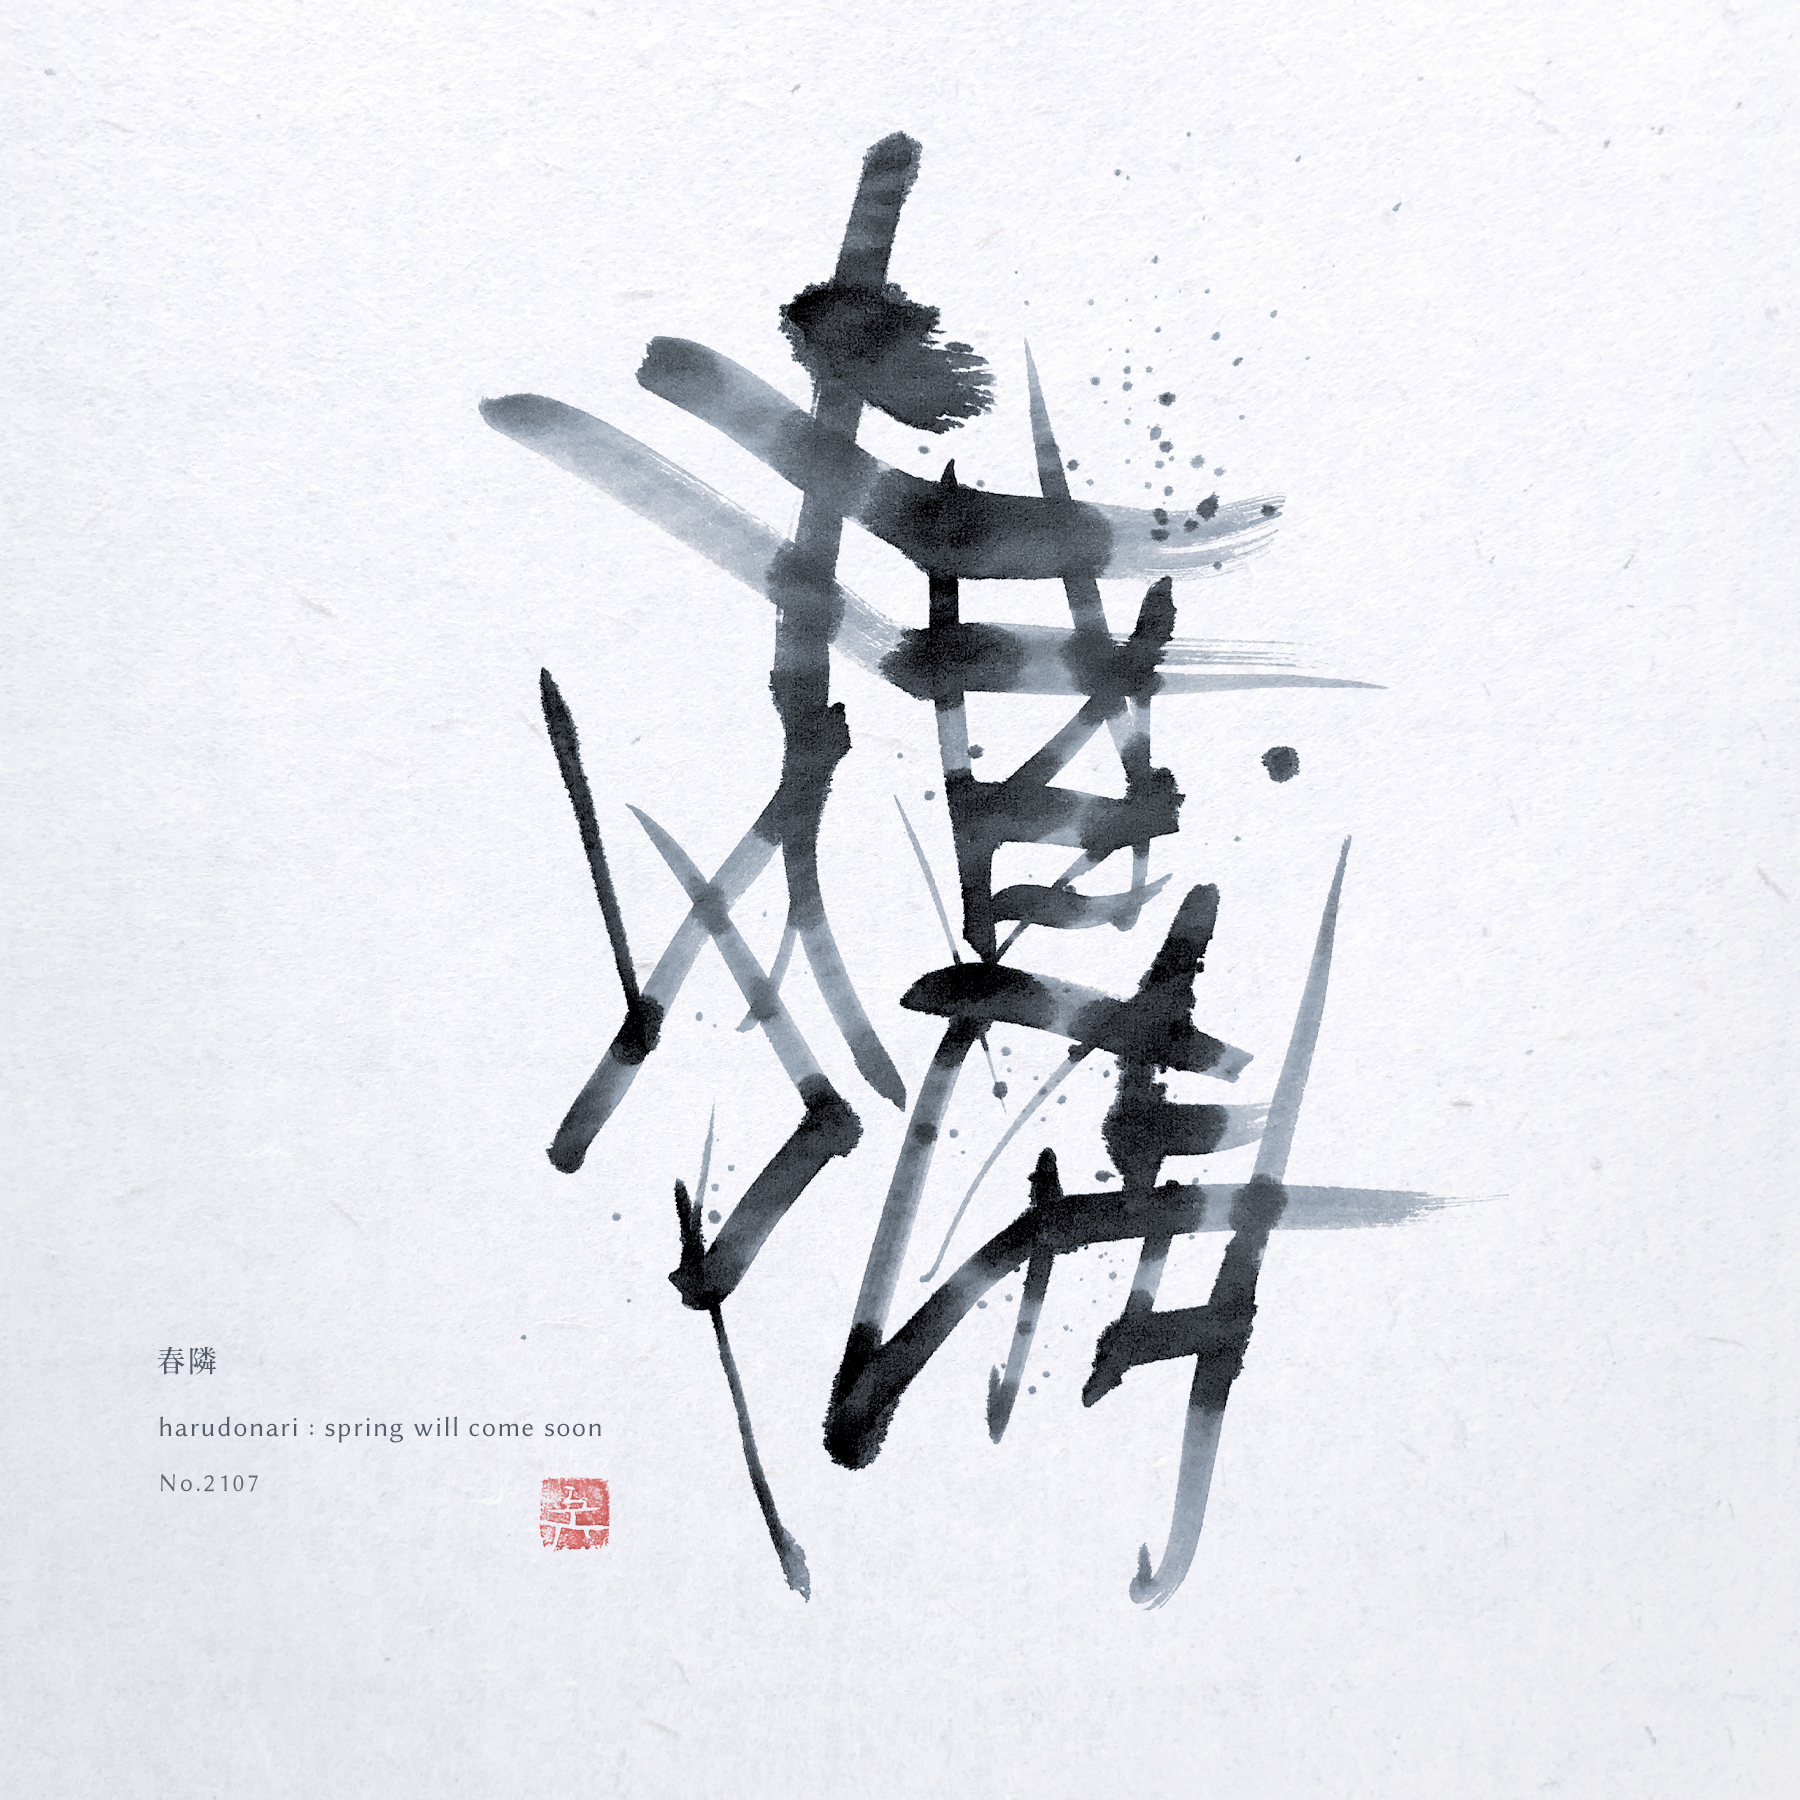 春隣| spring will come soon 書道作品 japaneseart japanese calligraphy 書家 田川悟郎 Goroh Tagawa